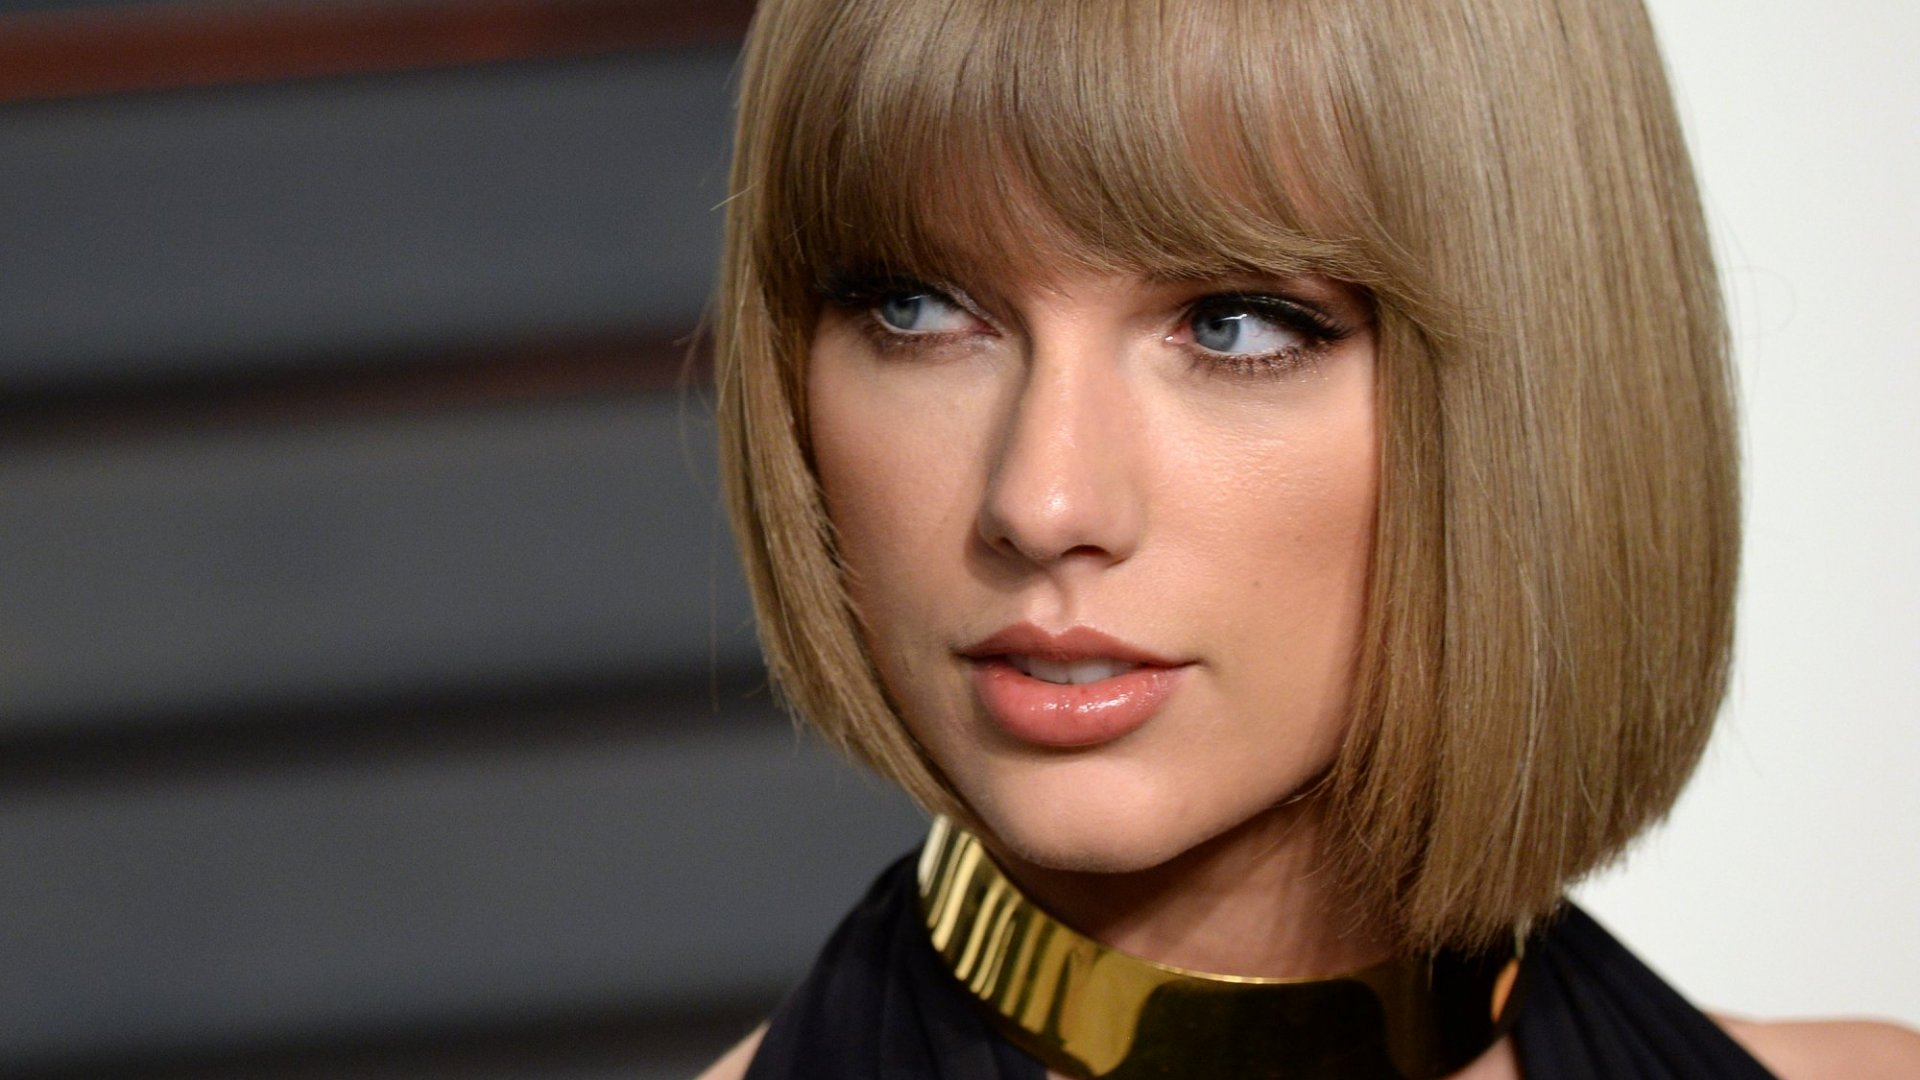 Taylor Swift Says This is Her Biggest Fear. It Teaches Us a Valuable Lesson